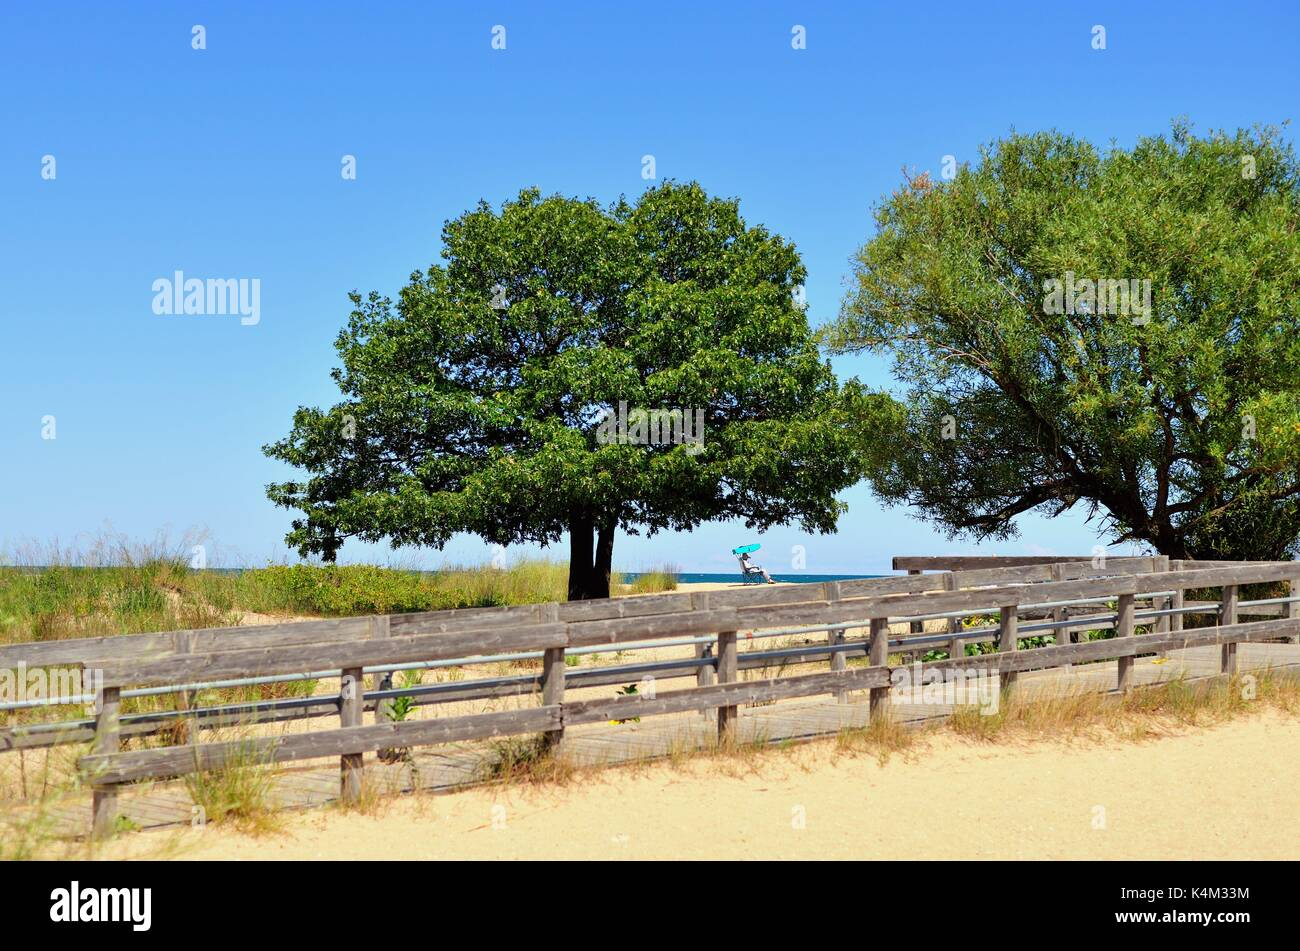 Zion, Illinois, USA. A lone beach-goer, a woman in a beach chair rests on the sand near a pair of trees at Illinois Beach State Park. - Stock Image